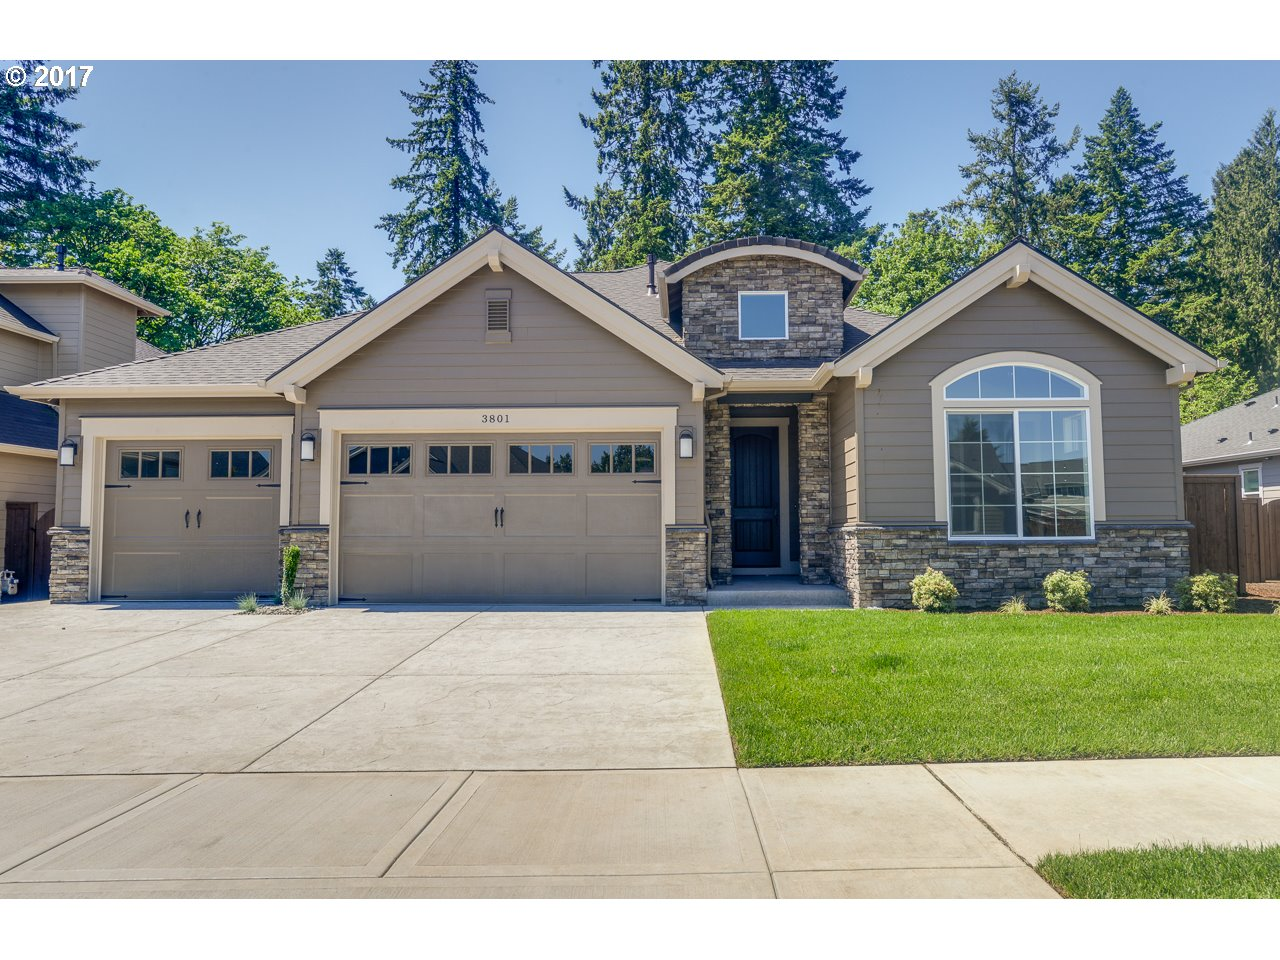 3801 SE PIPERS DR, Hillsboro, OR 97123